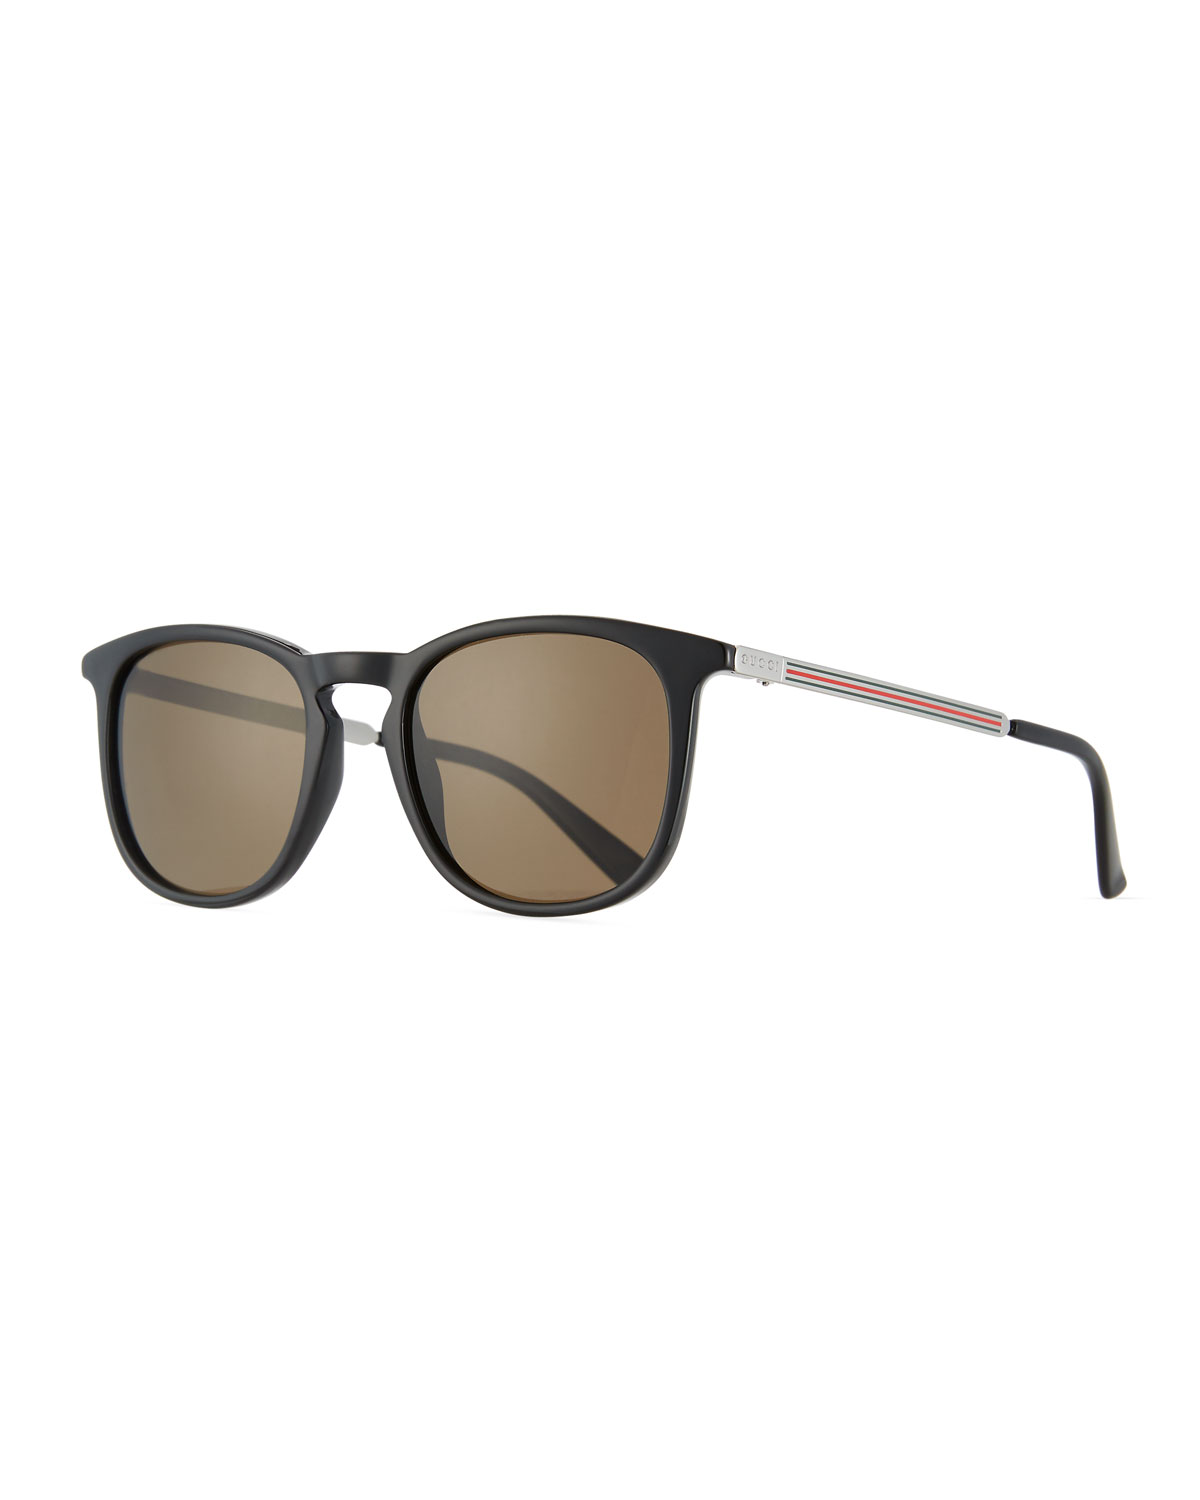 4adcd7723d5 Gucci Men s Square Optyl Web Sunglasses